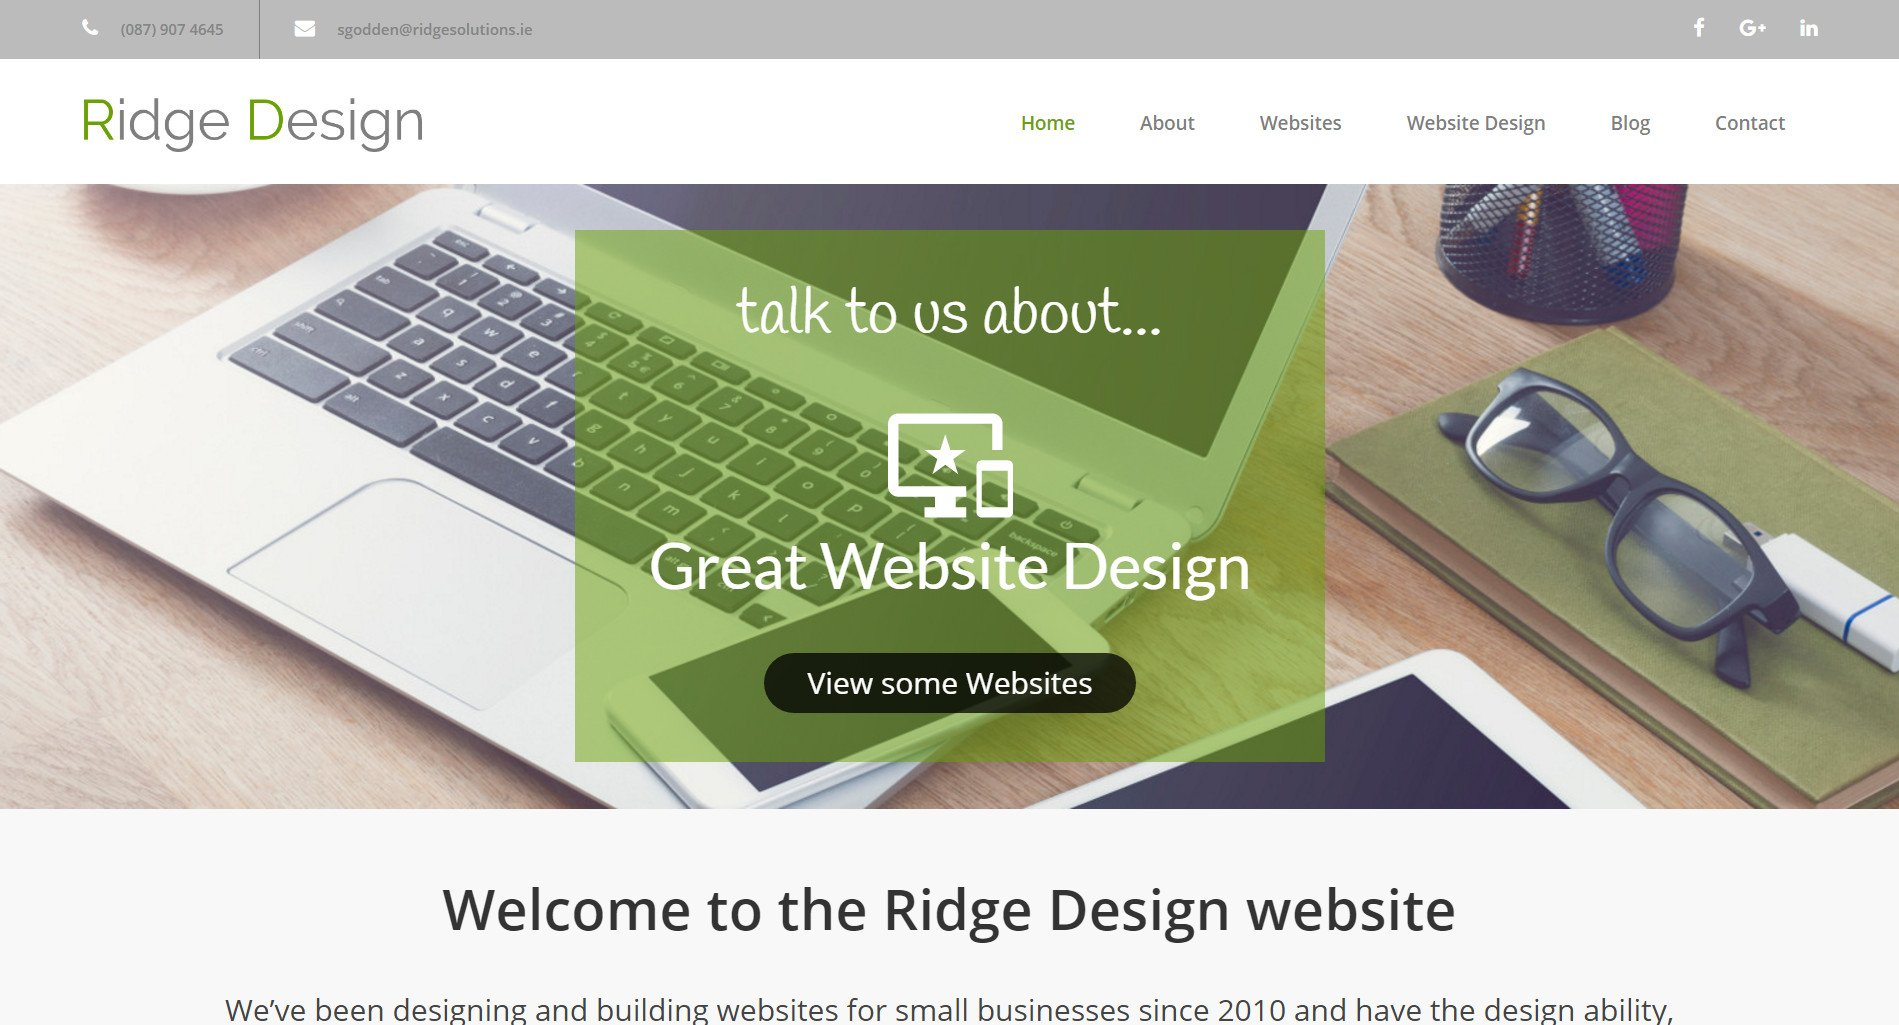 New website for Ridge Design - Featured Image showing Home Page